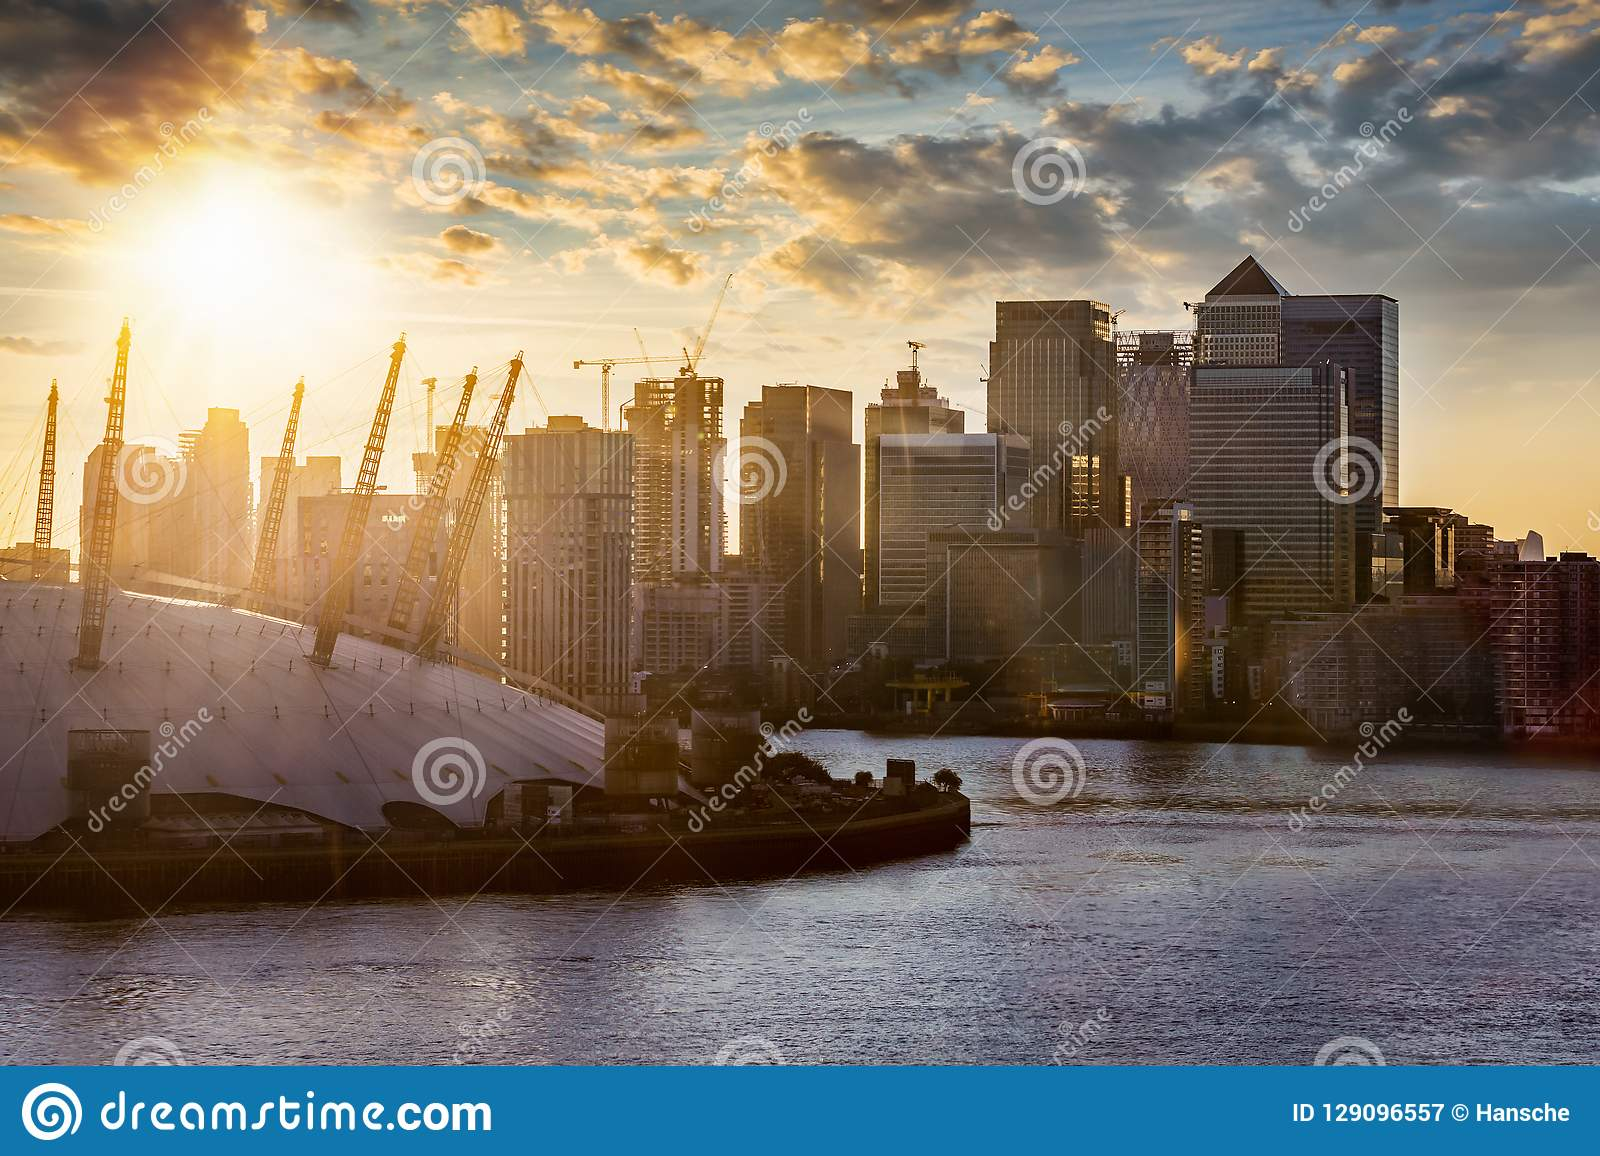 View to the financial district of London, Canary Wharf, United Kingdom